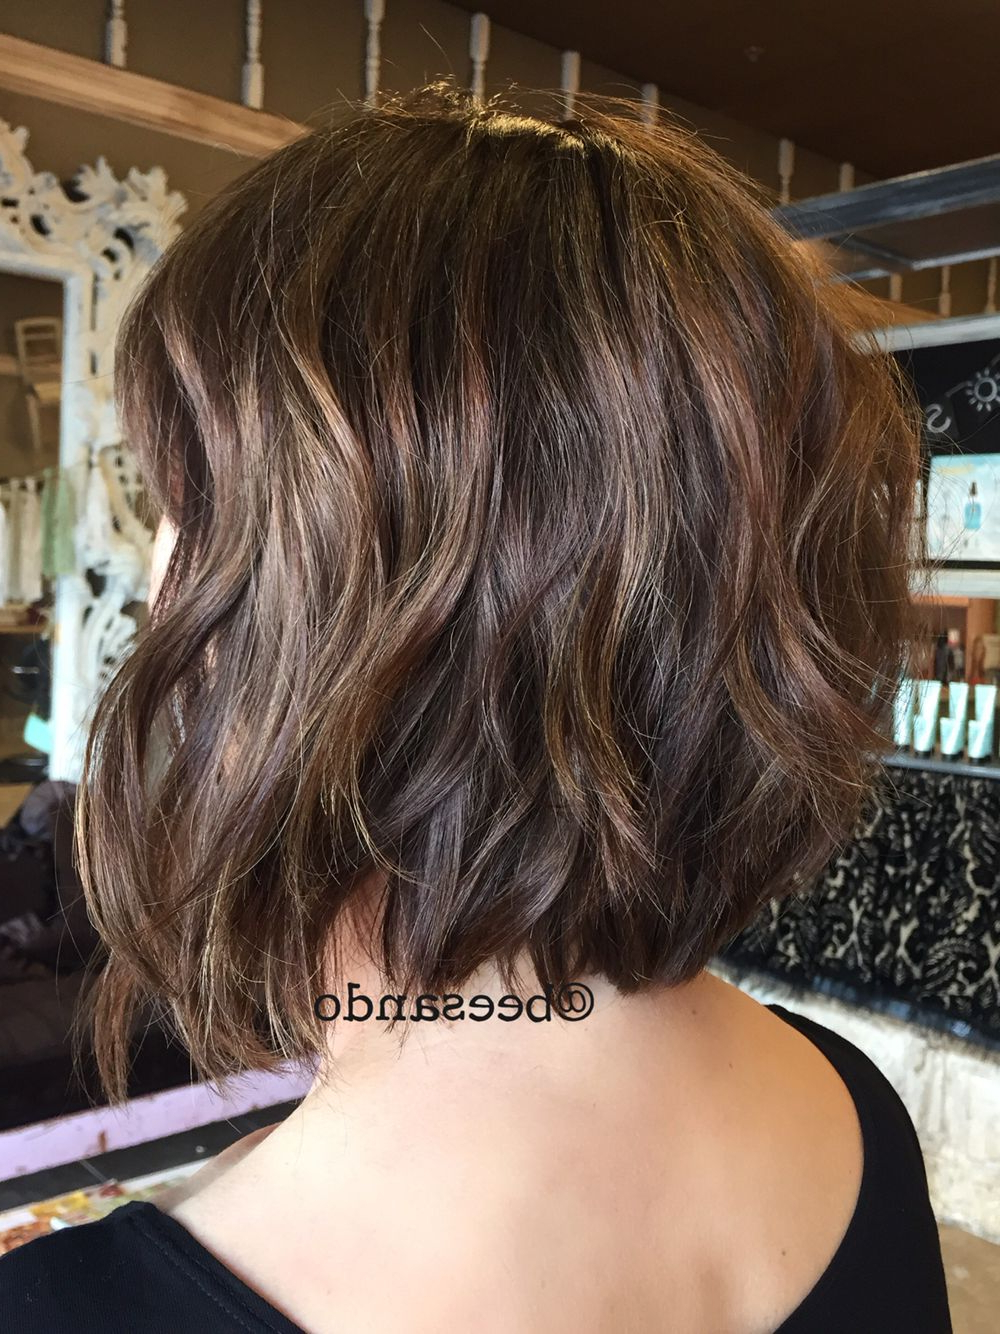 Brunette Balayage Razor Bob | Blondes, Bobs & Balayage | Pinterest In Sexy Tousled Wavy Bob For Brunettes (View 15 of 20)